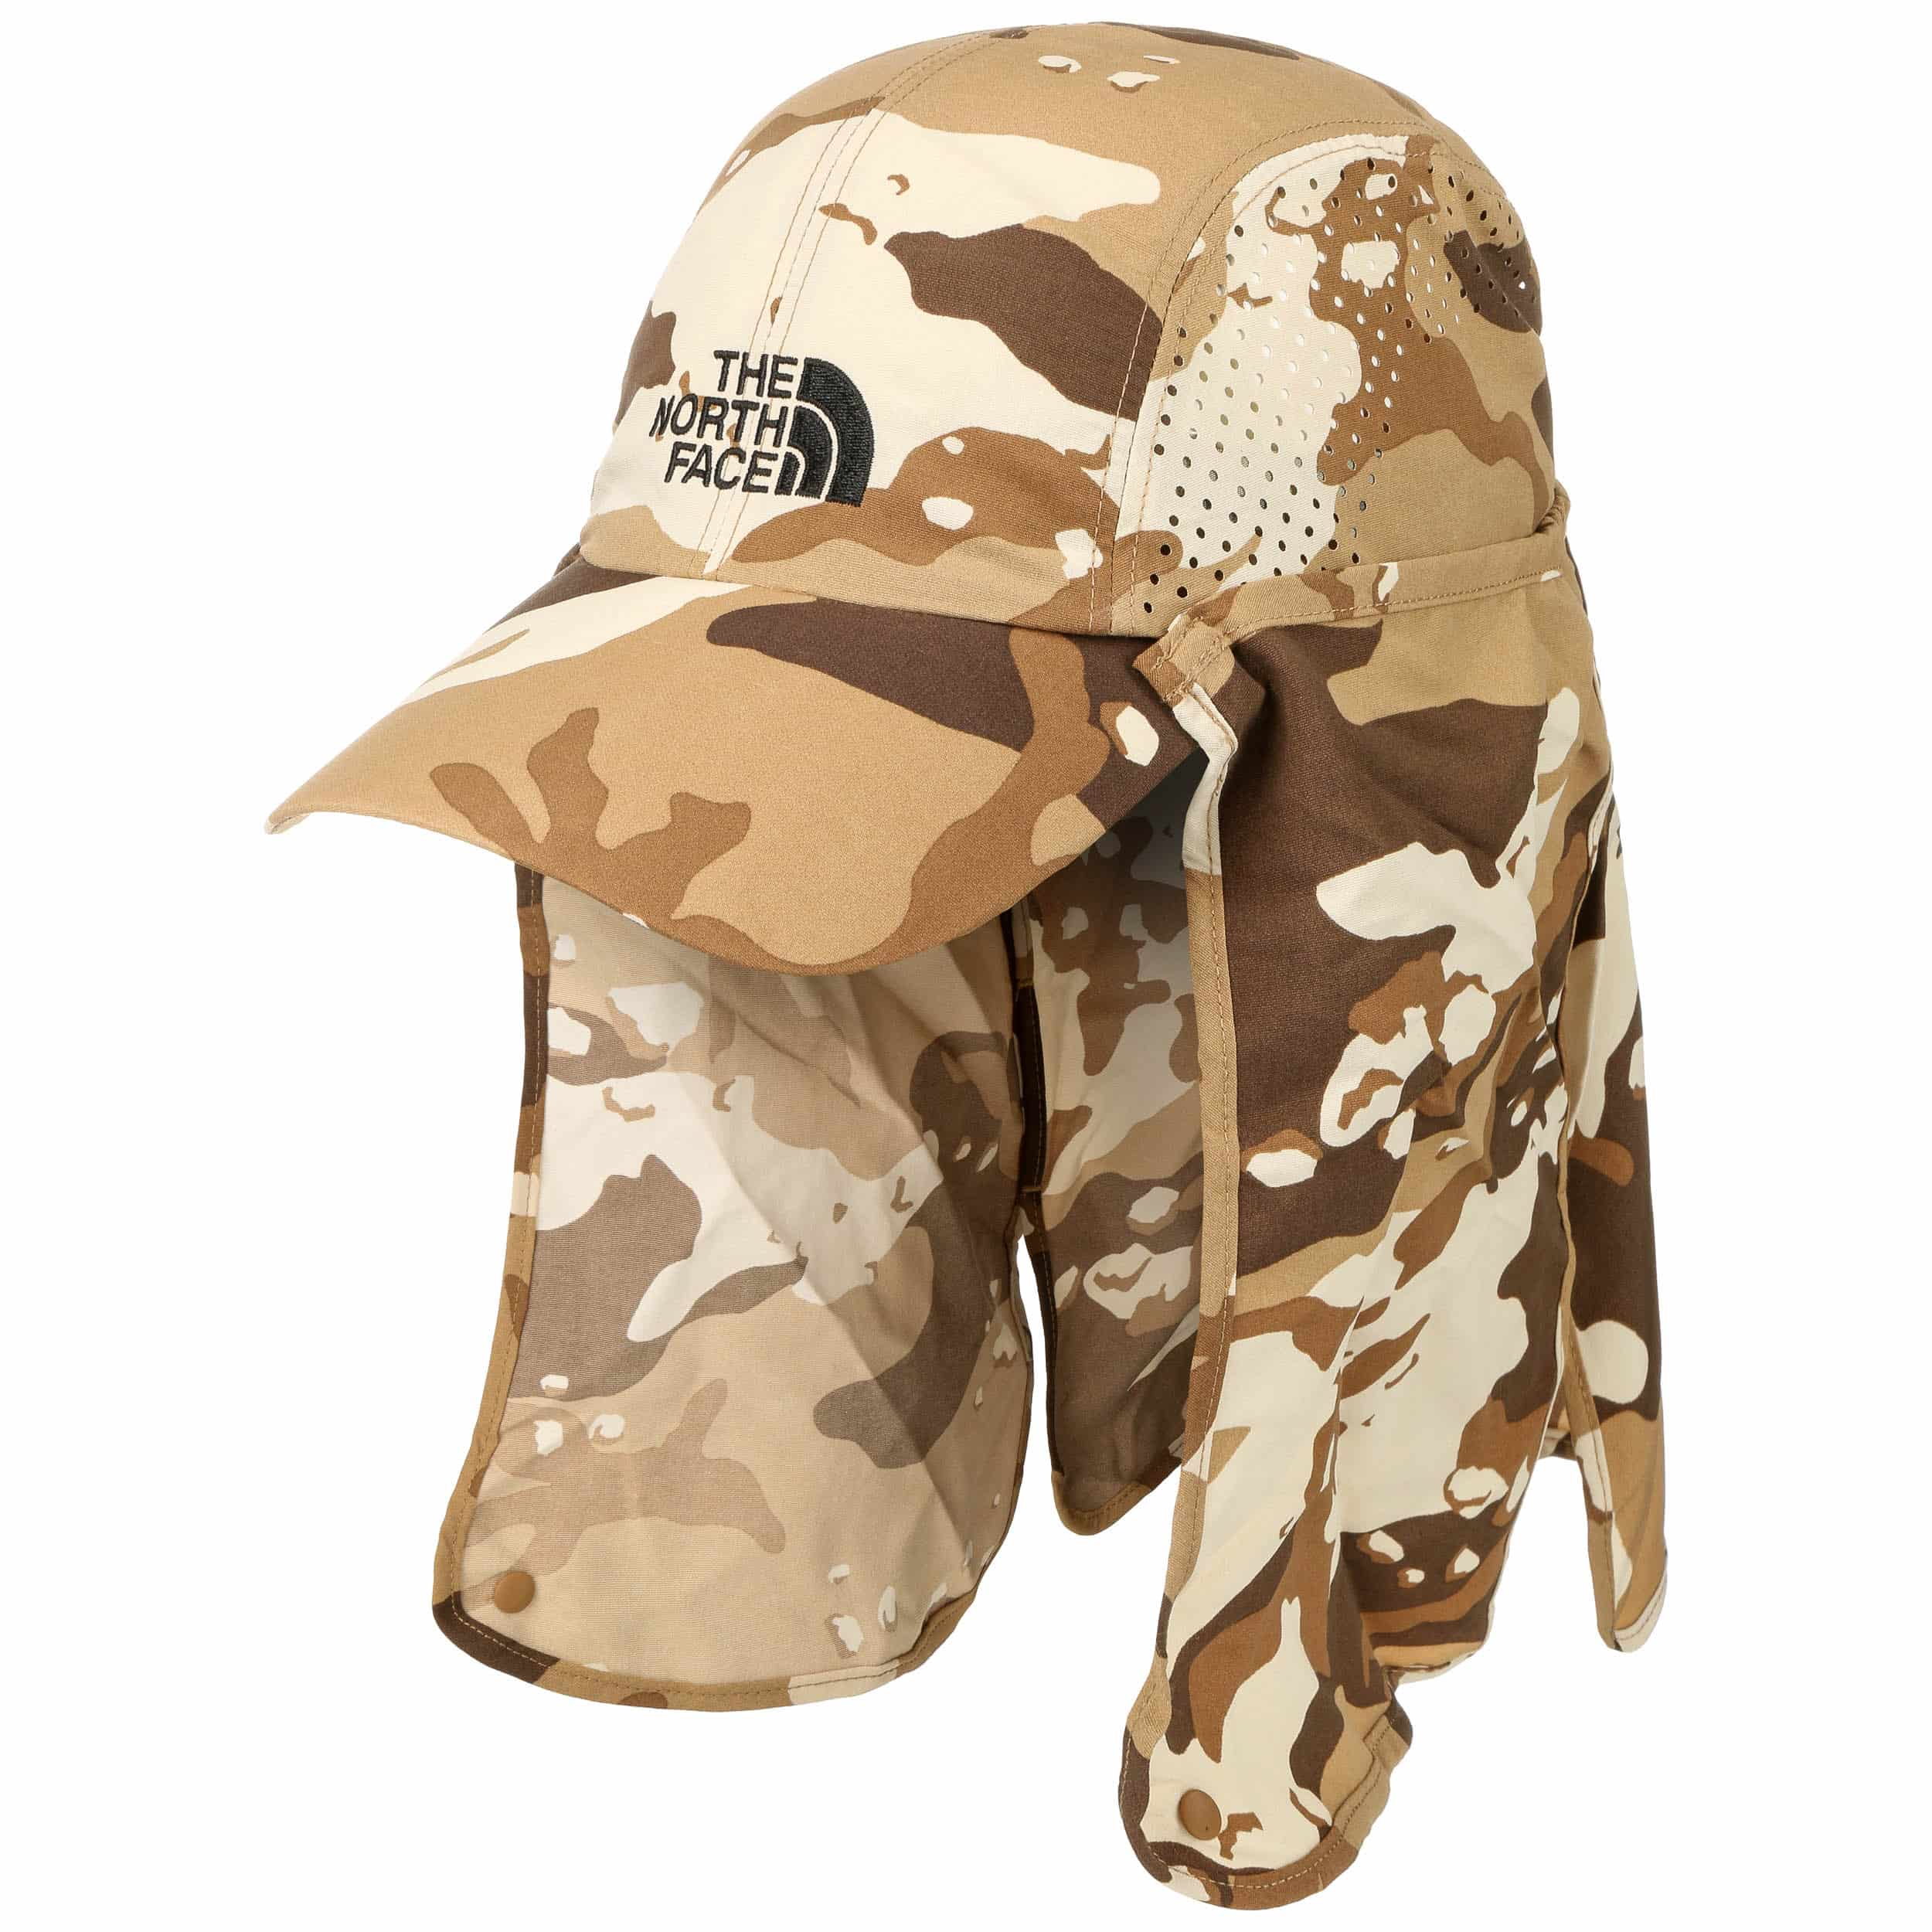 a4c84471e4f ... Sun Shield Ball Cap by The North Face - beige 4 ...